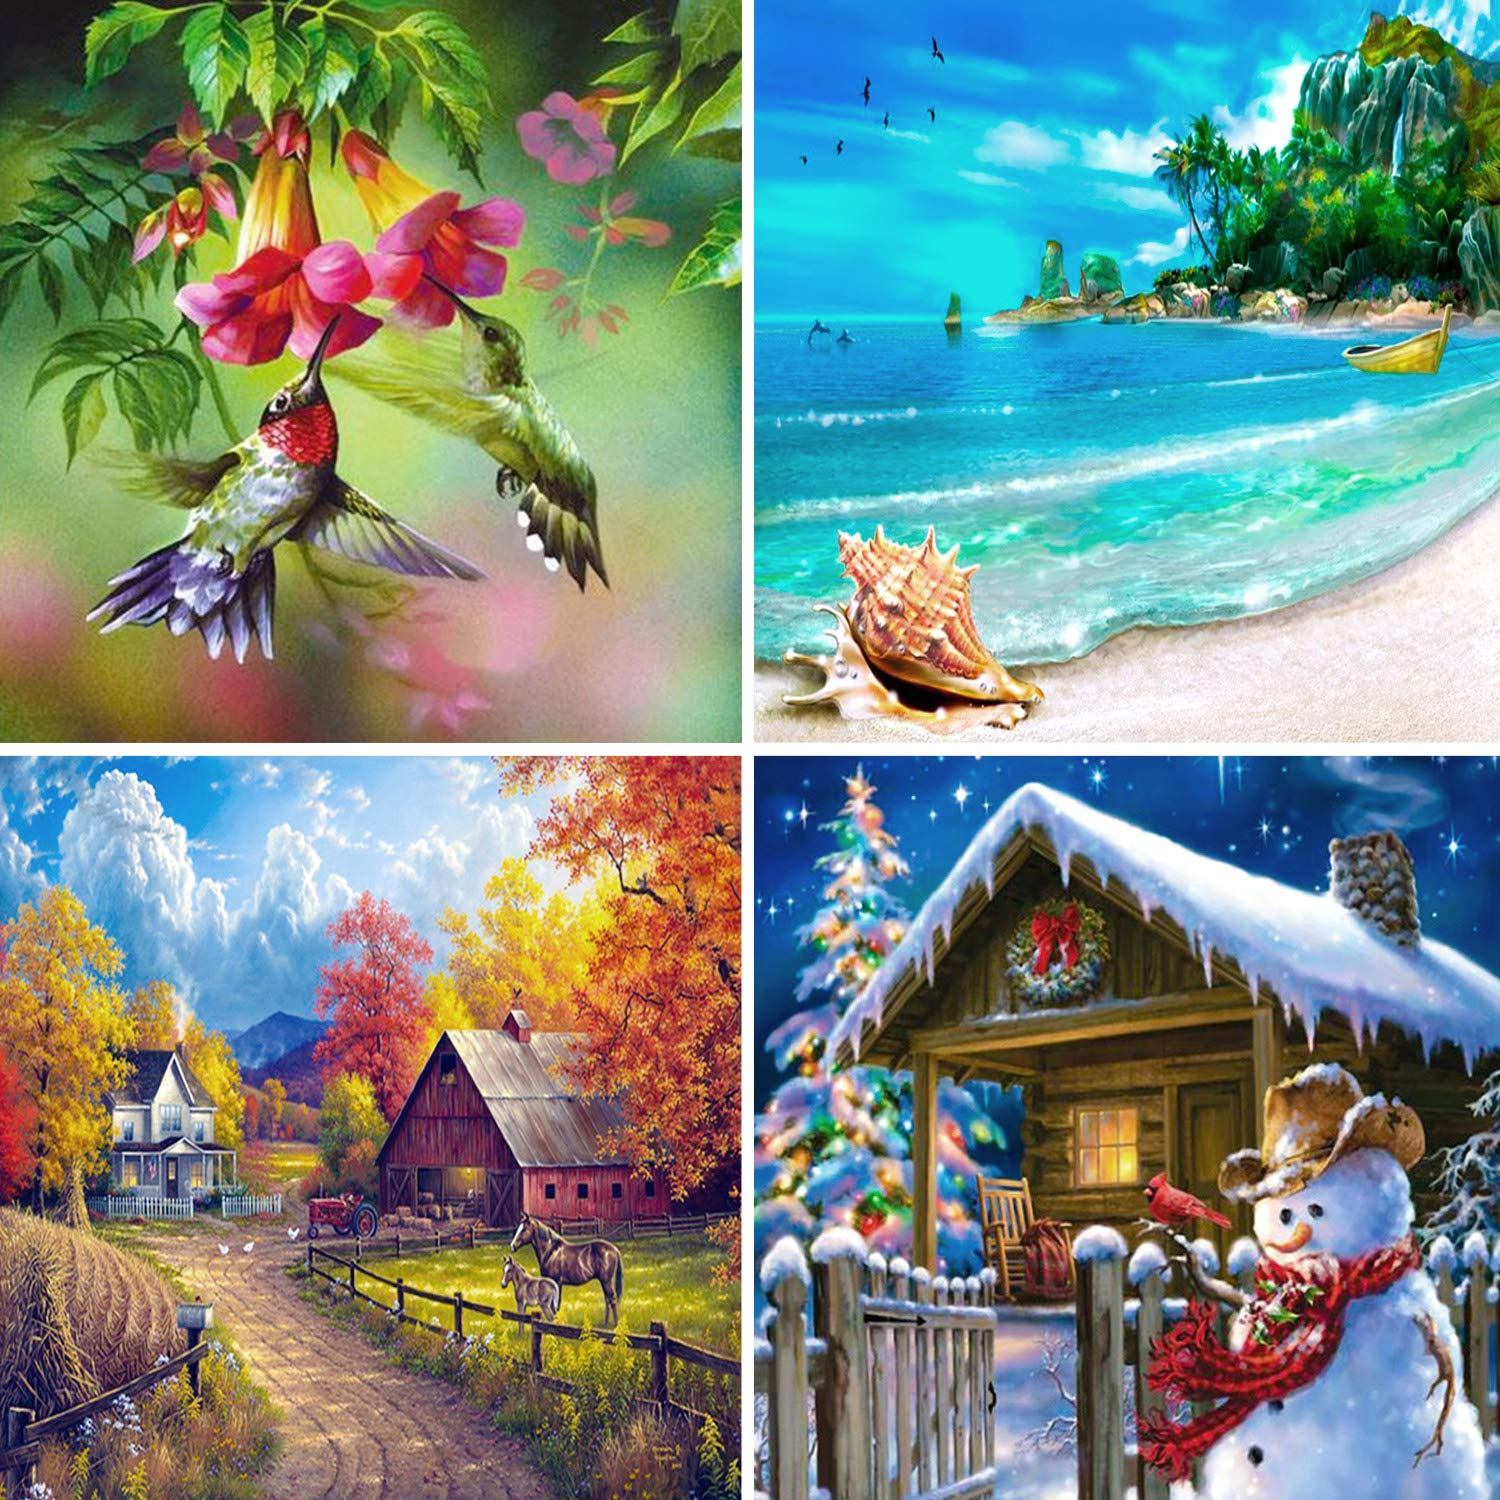 Aneco 4 Pack 5D DIY Diamond Painting by Number Kits Full Drill Cross Stitch Rhinestone Embroidery Paintings Four Seasons Pictures for Home Decoration